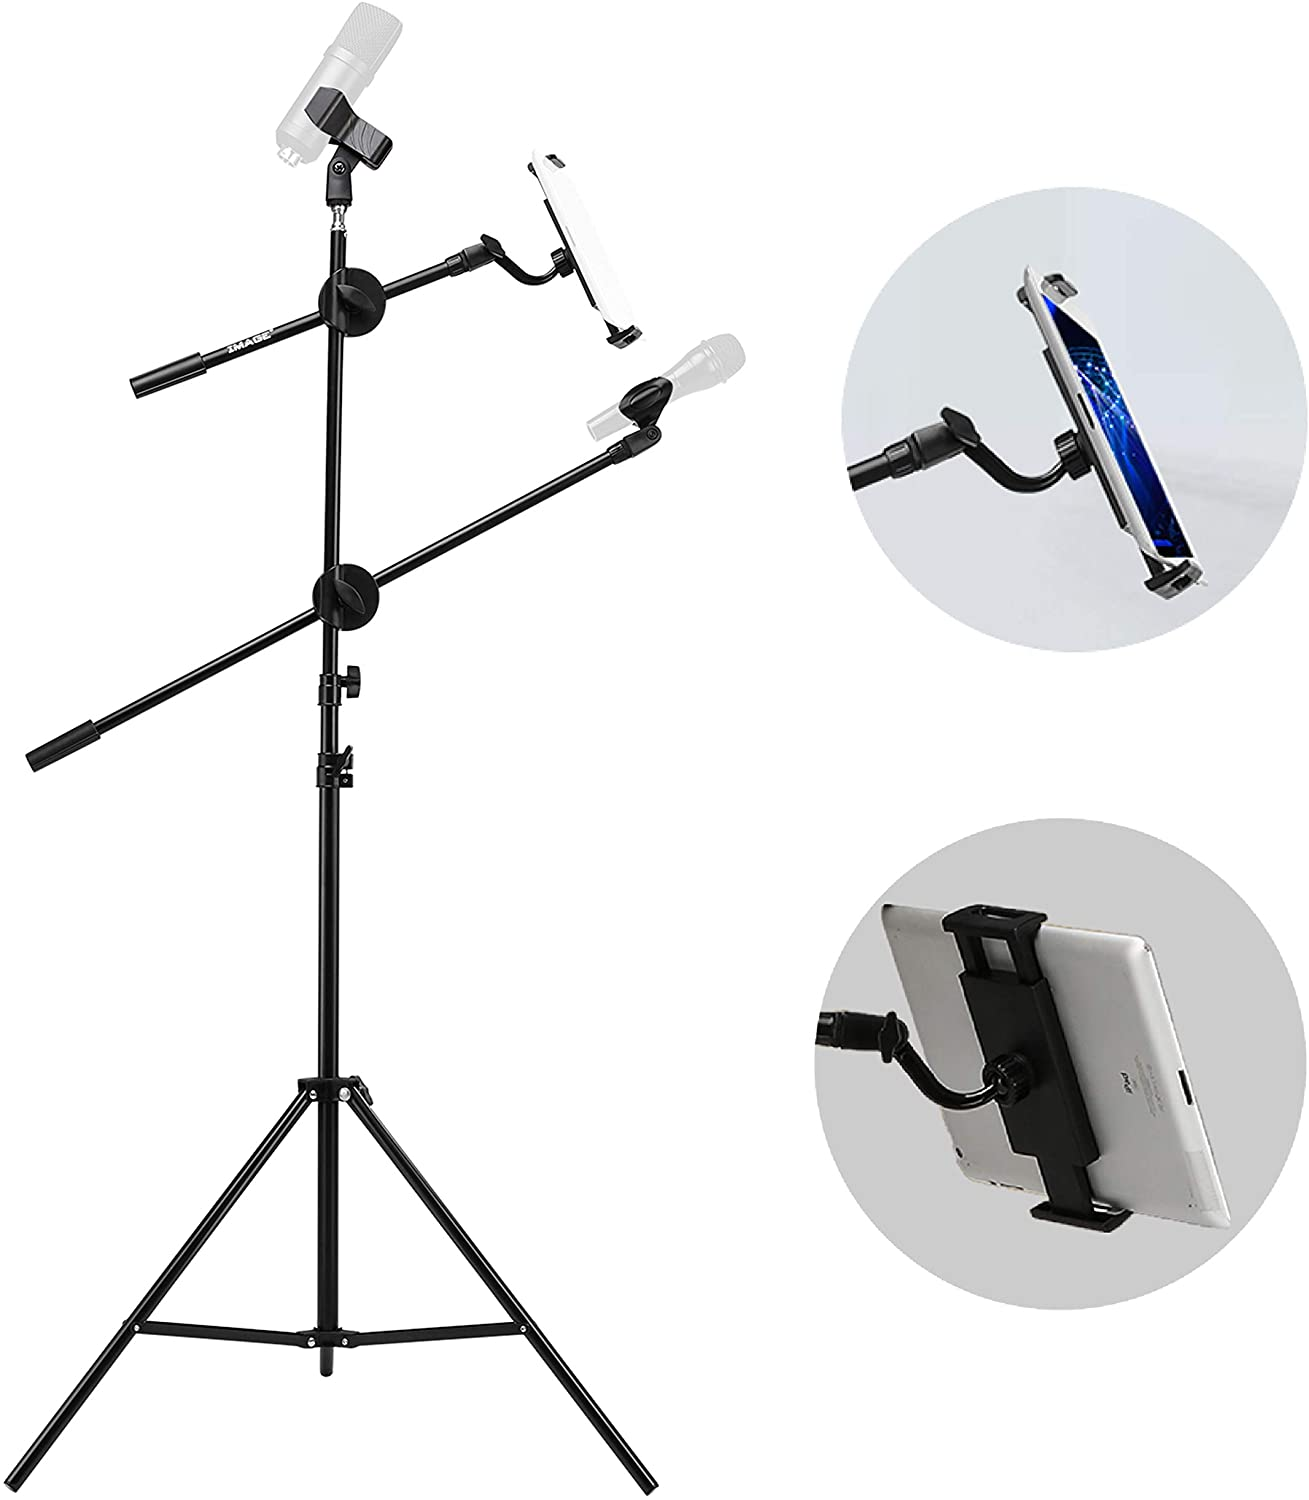 Tablet or Cellphone Microphone Stand Collapsible and Adjustable Height Heavy Metal Base for PC IMAGE Mic Stand with Mic Clip Holder